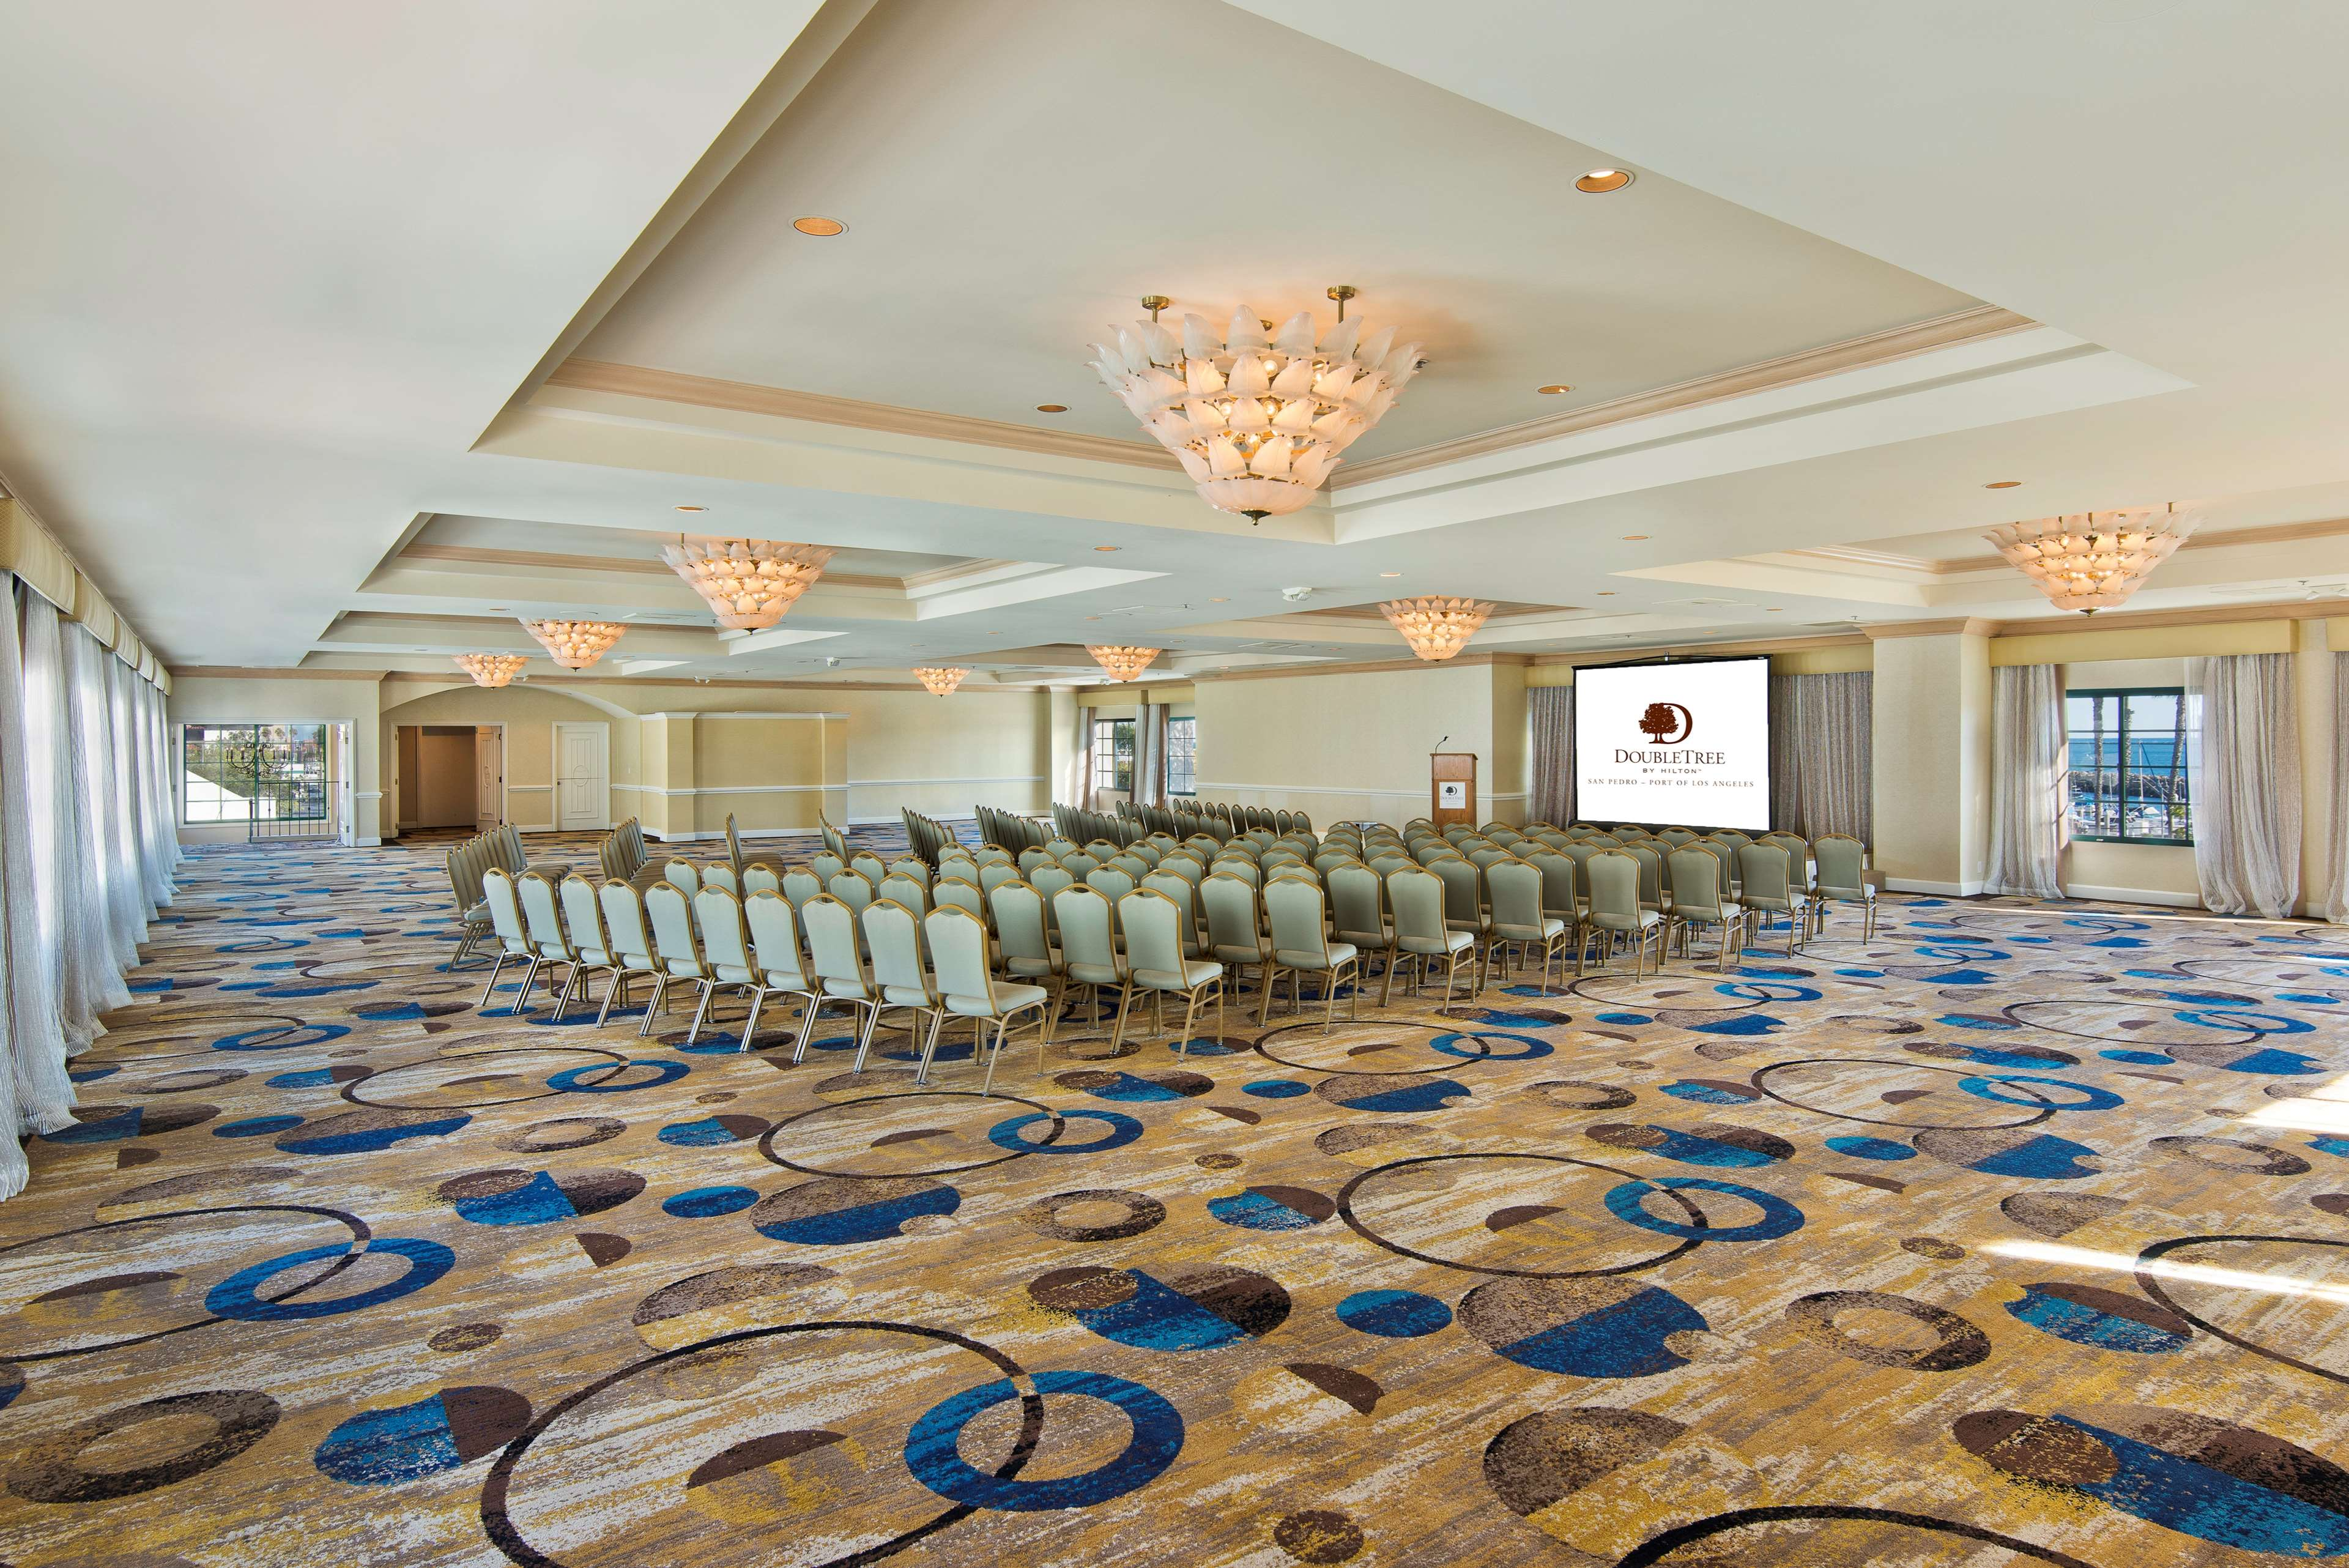 DoubleTree by Hilton Hotel San Pedro - Port of Los Angeles image 25